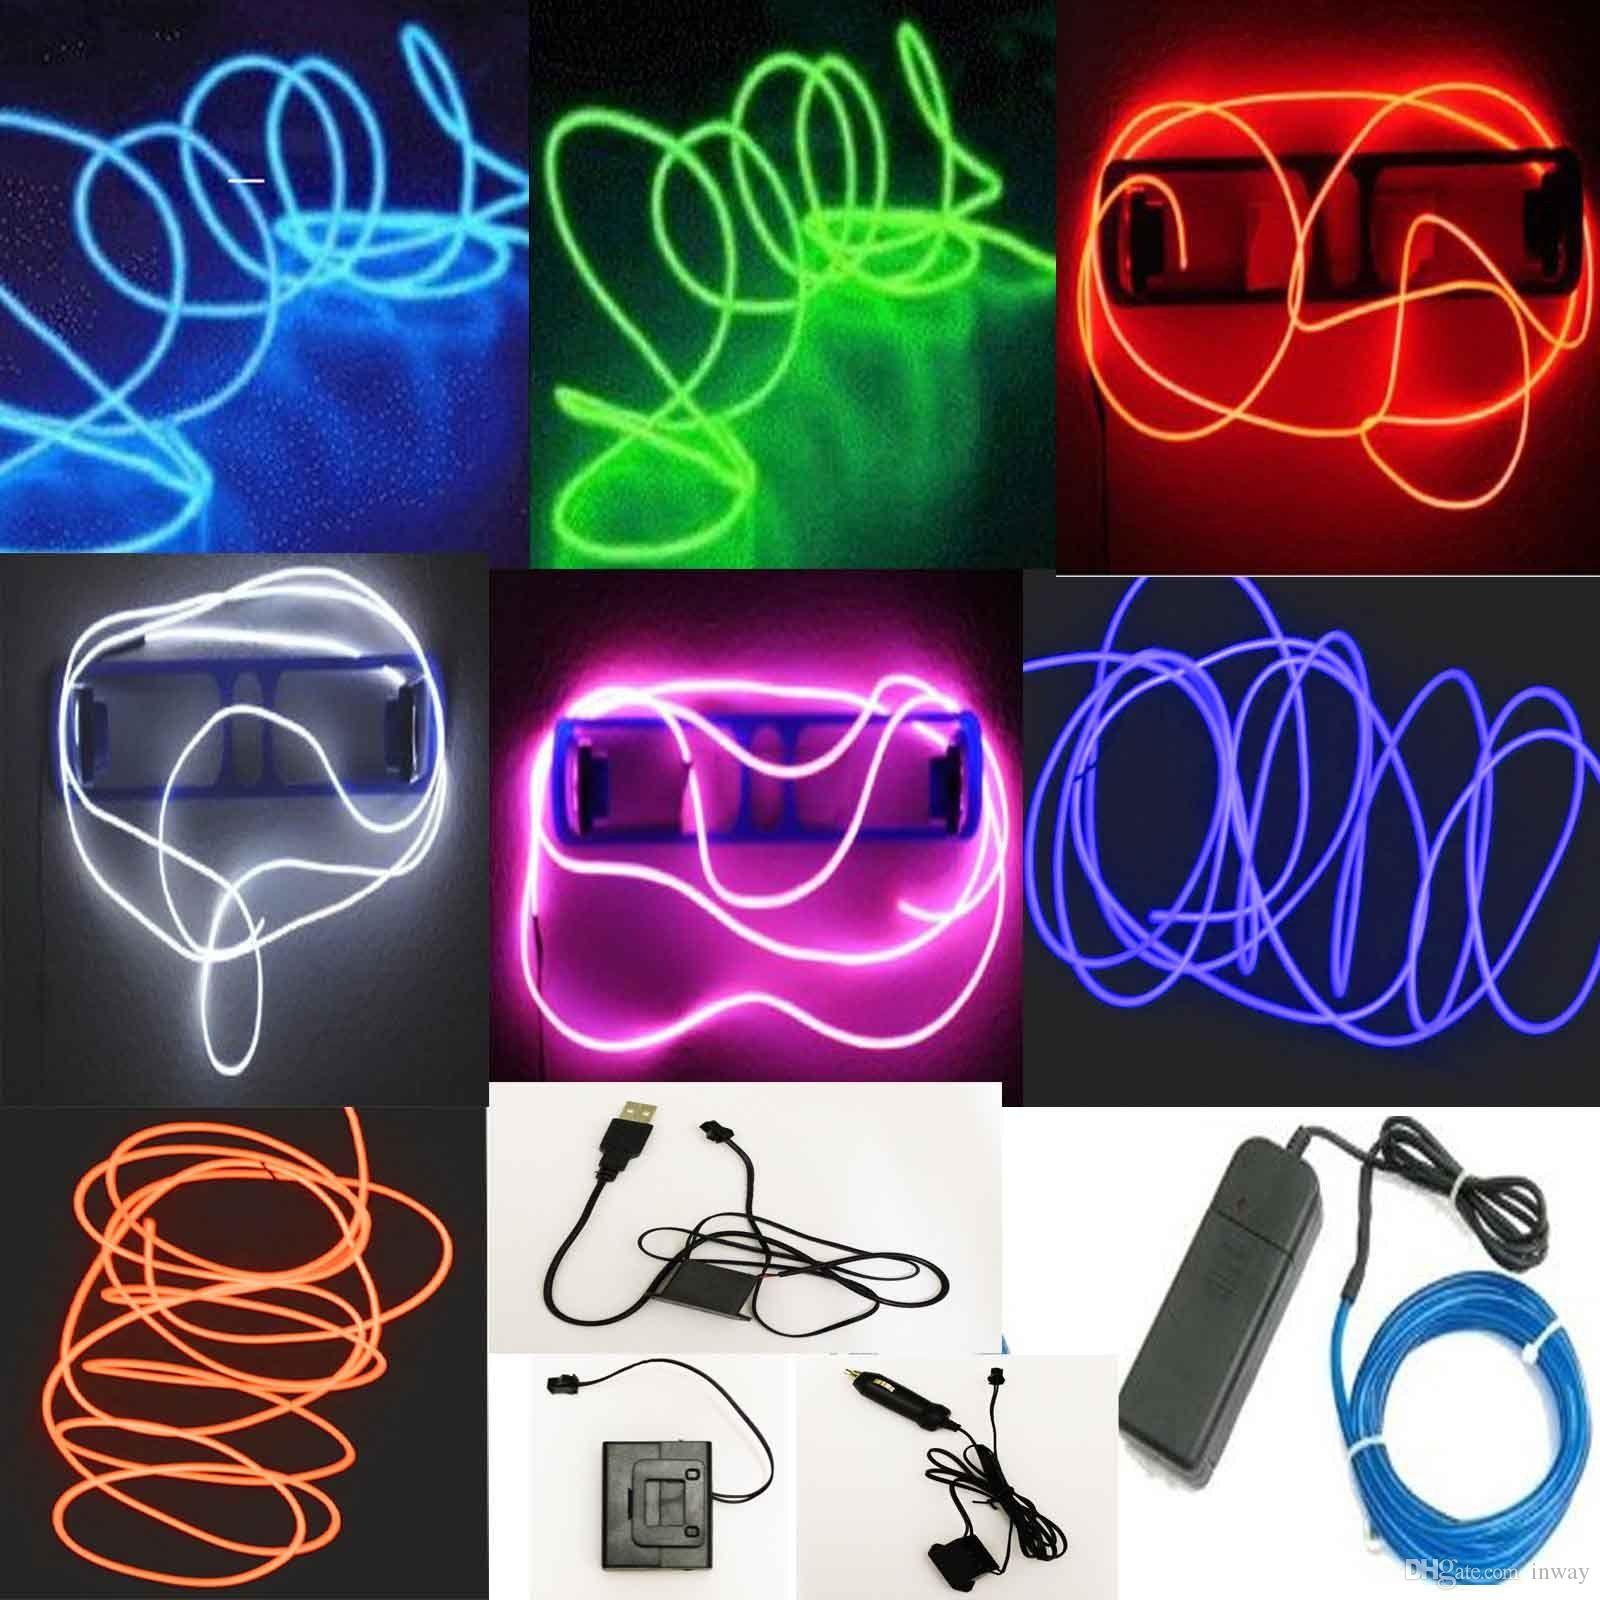 5m flexible neon led light glow el wire string strip rope. Black Bedroom Furniture Sets. Home Design Ideas